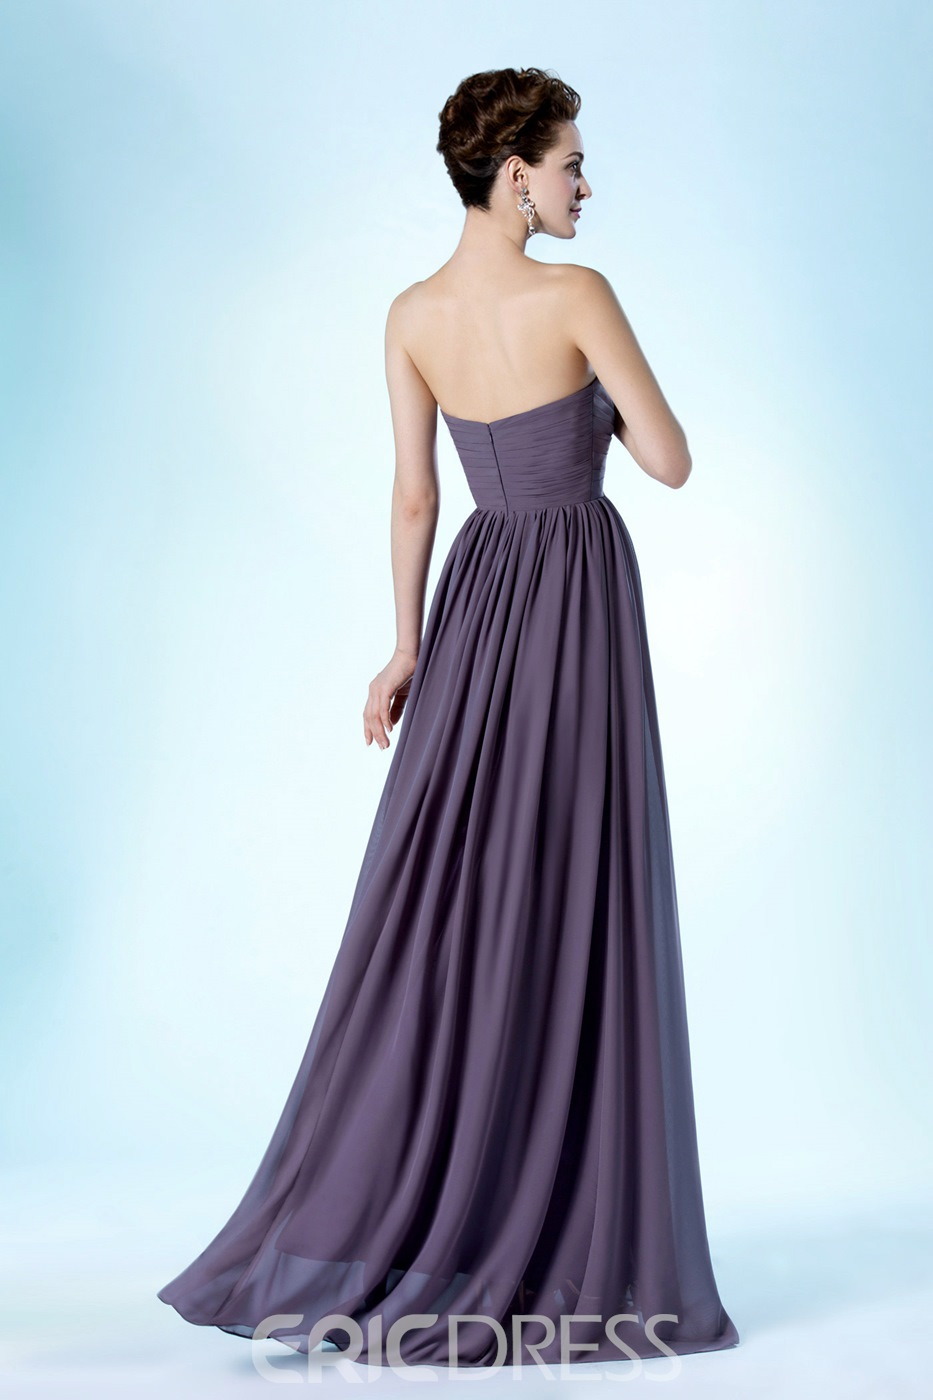 Elegant A-line Floor-Length Strapless Bridesmaid Dress